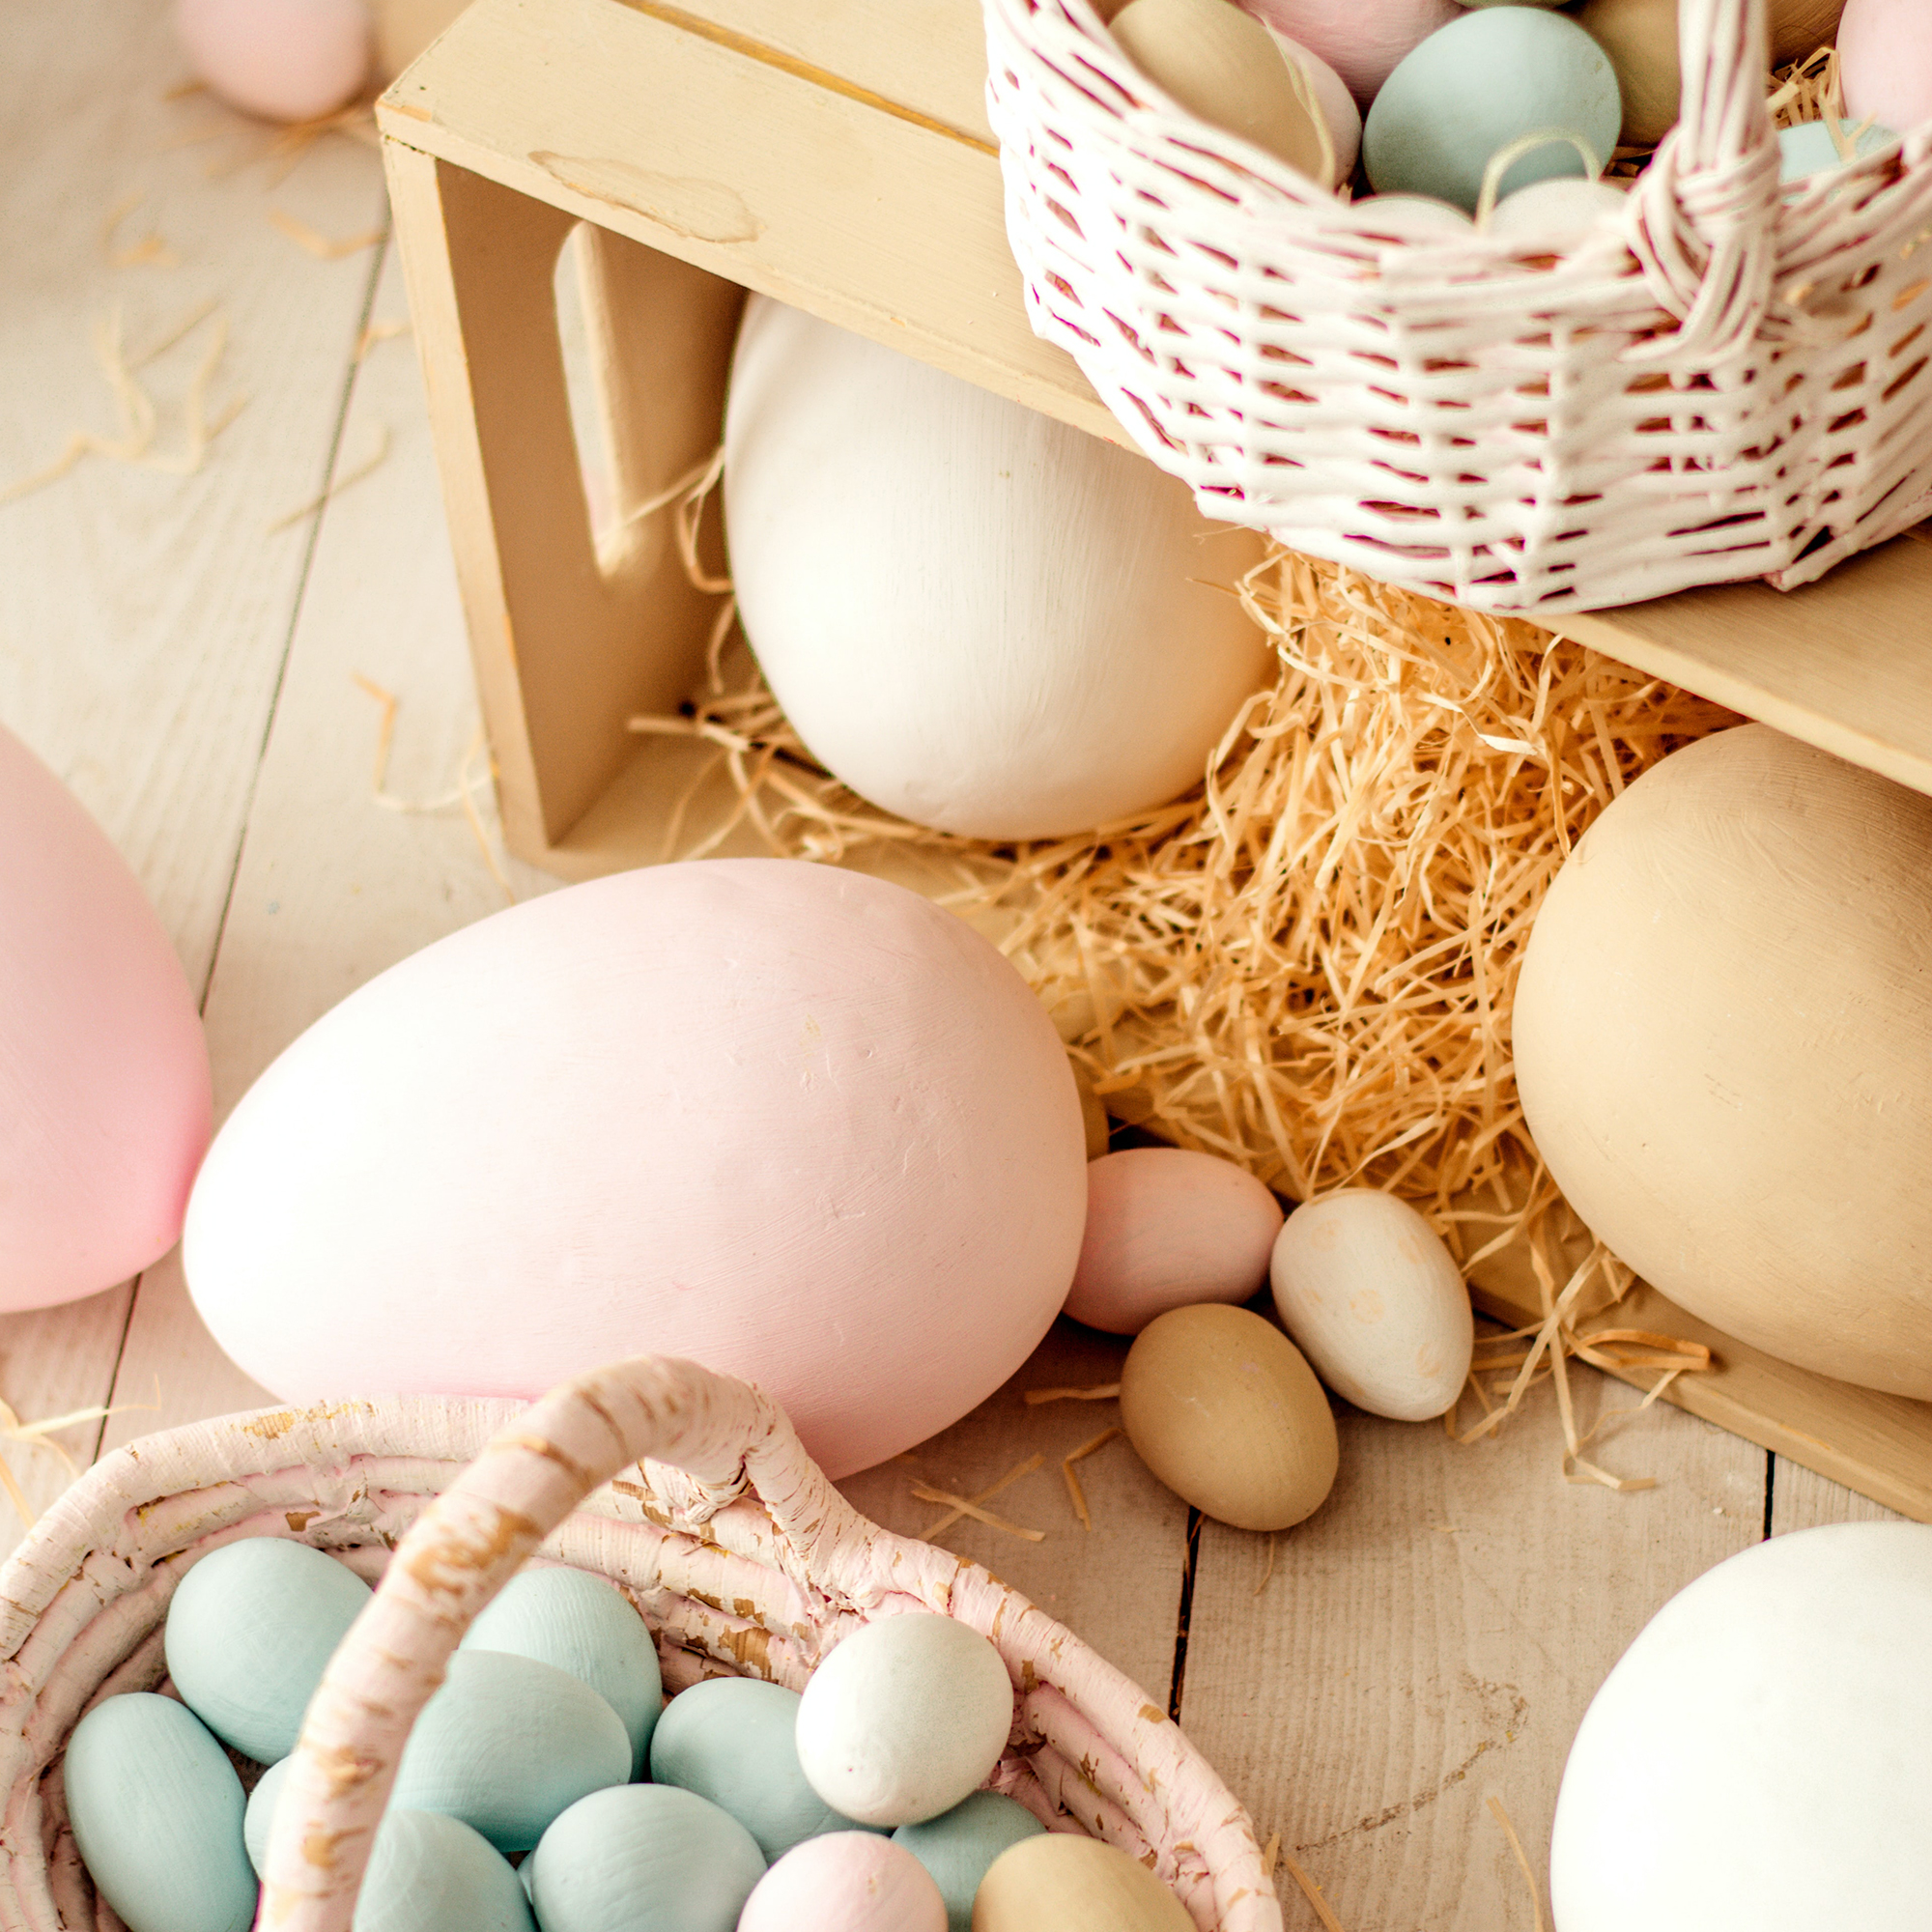 baskets and eggs